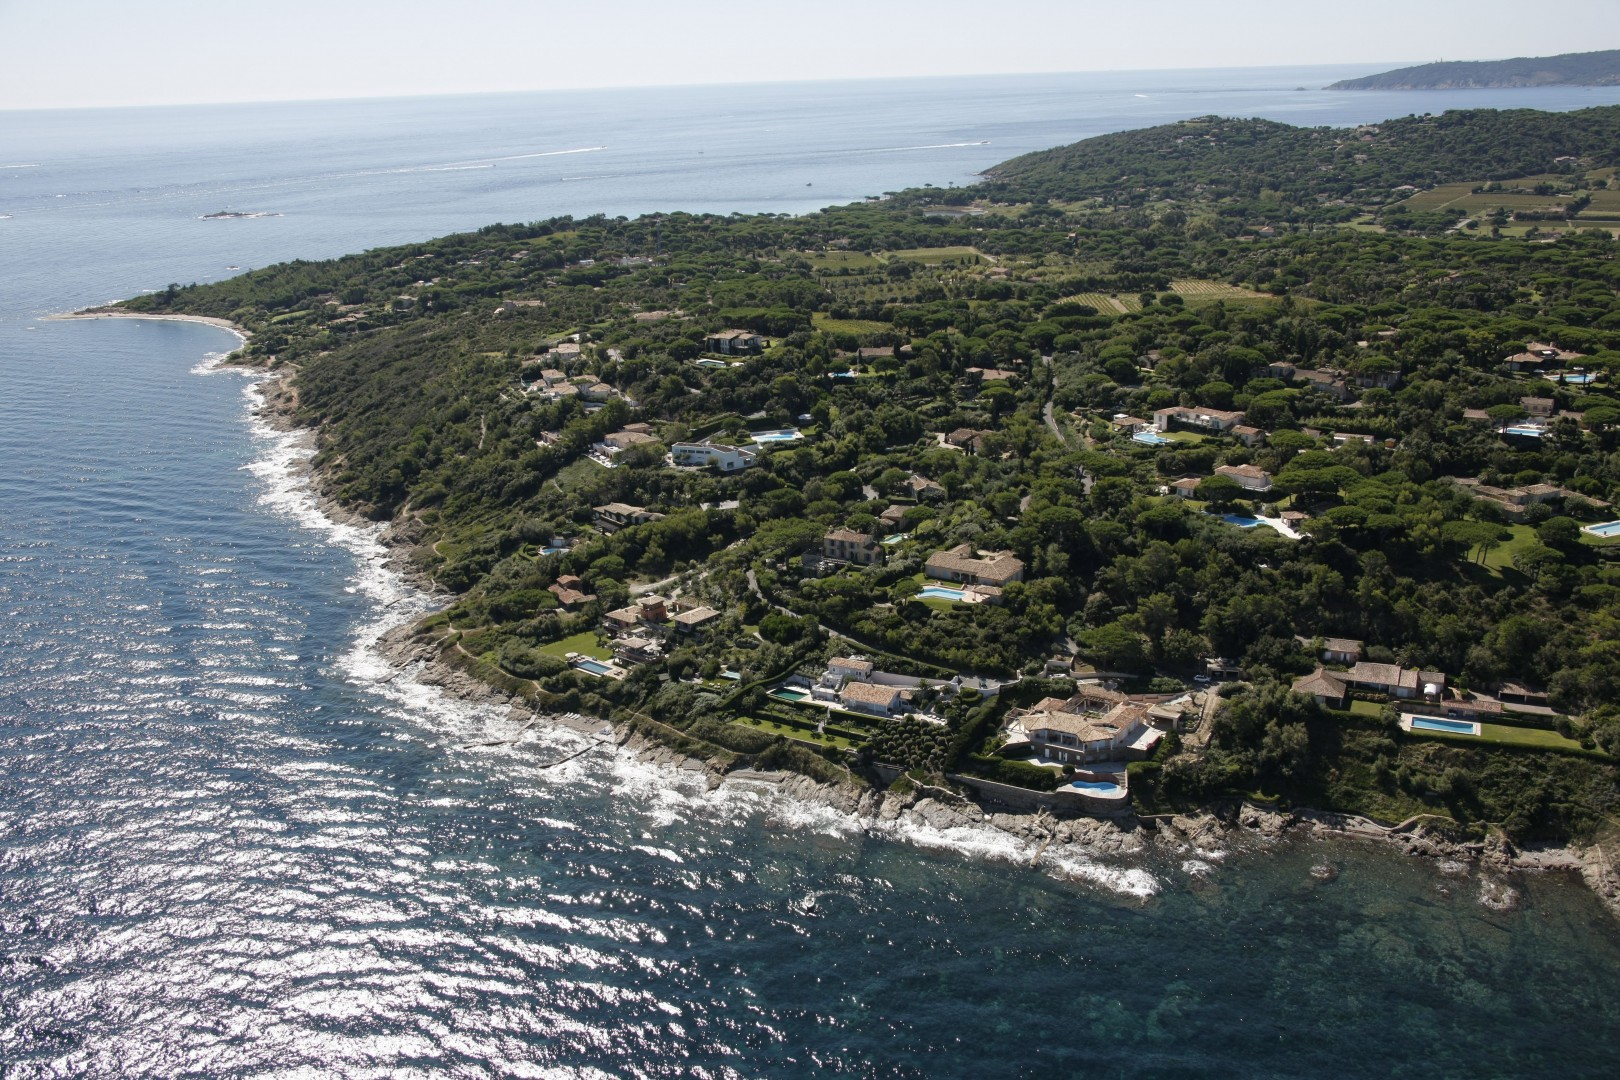 Arial views of Les Parcs de Saint Tropez